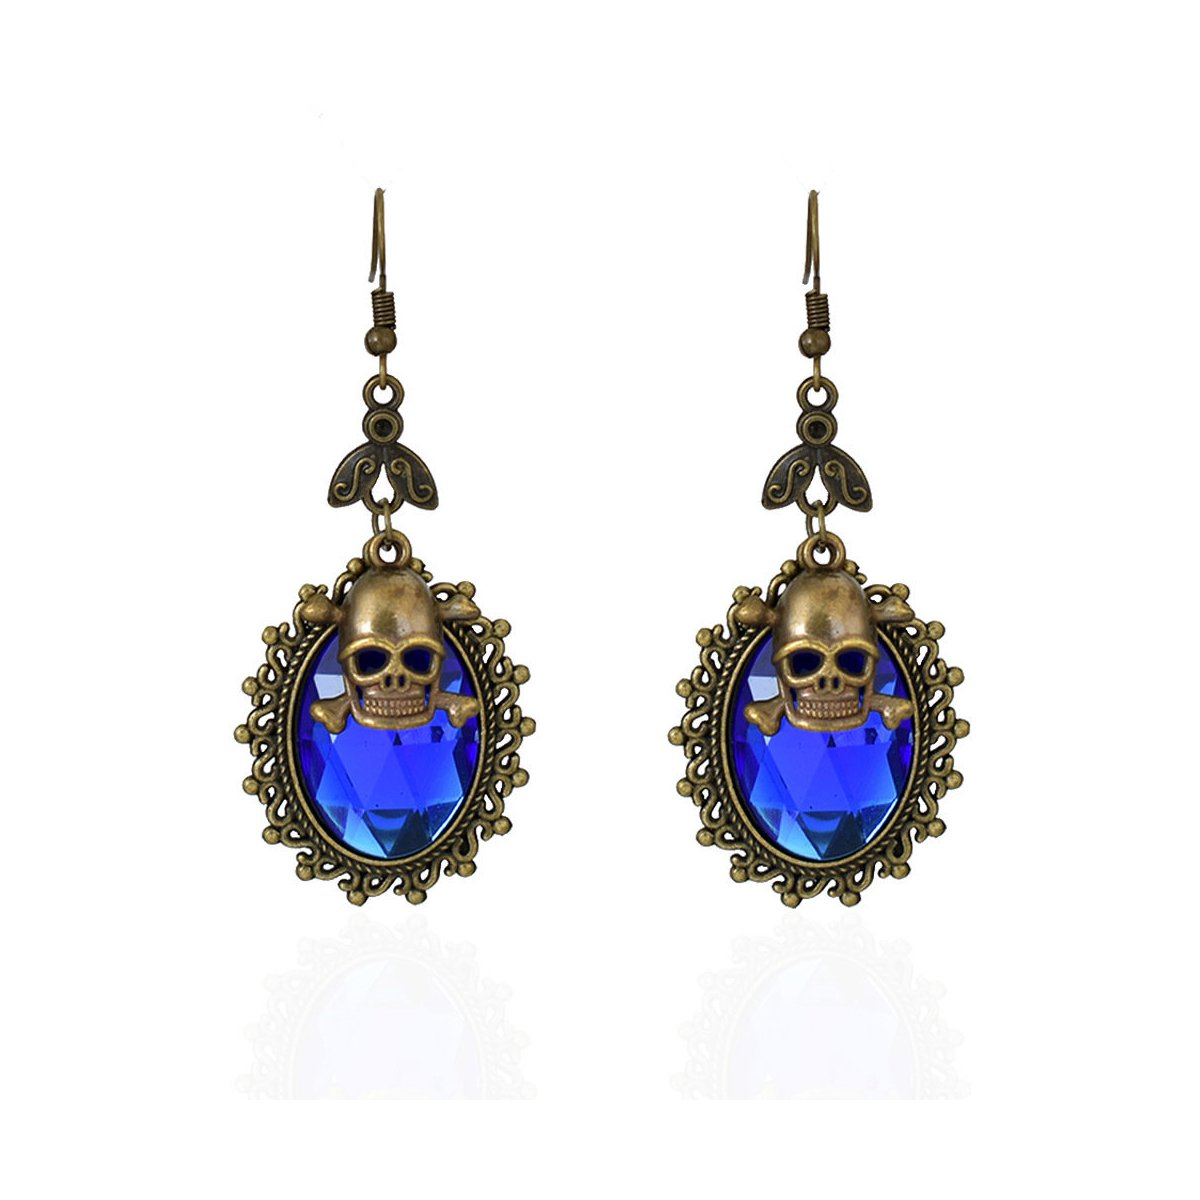 Royal Blue Crystal Drop Earrings with Antiqued Gold Bezel and Skull Charm